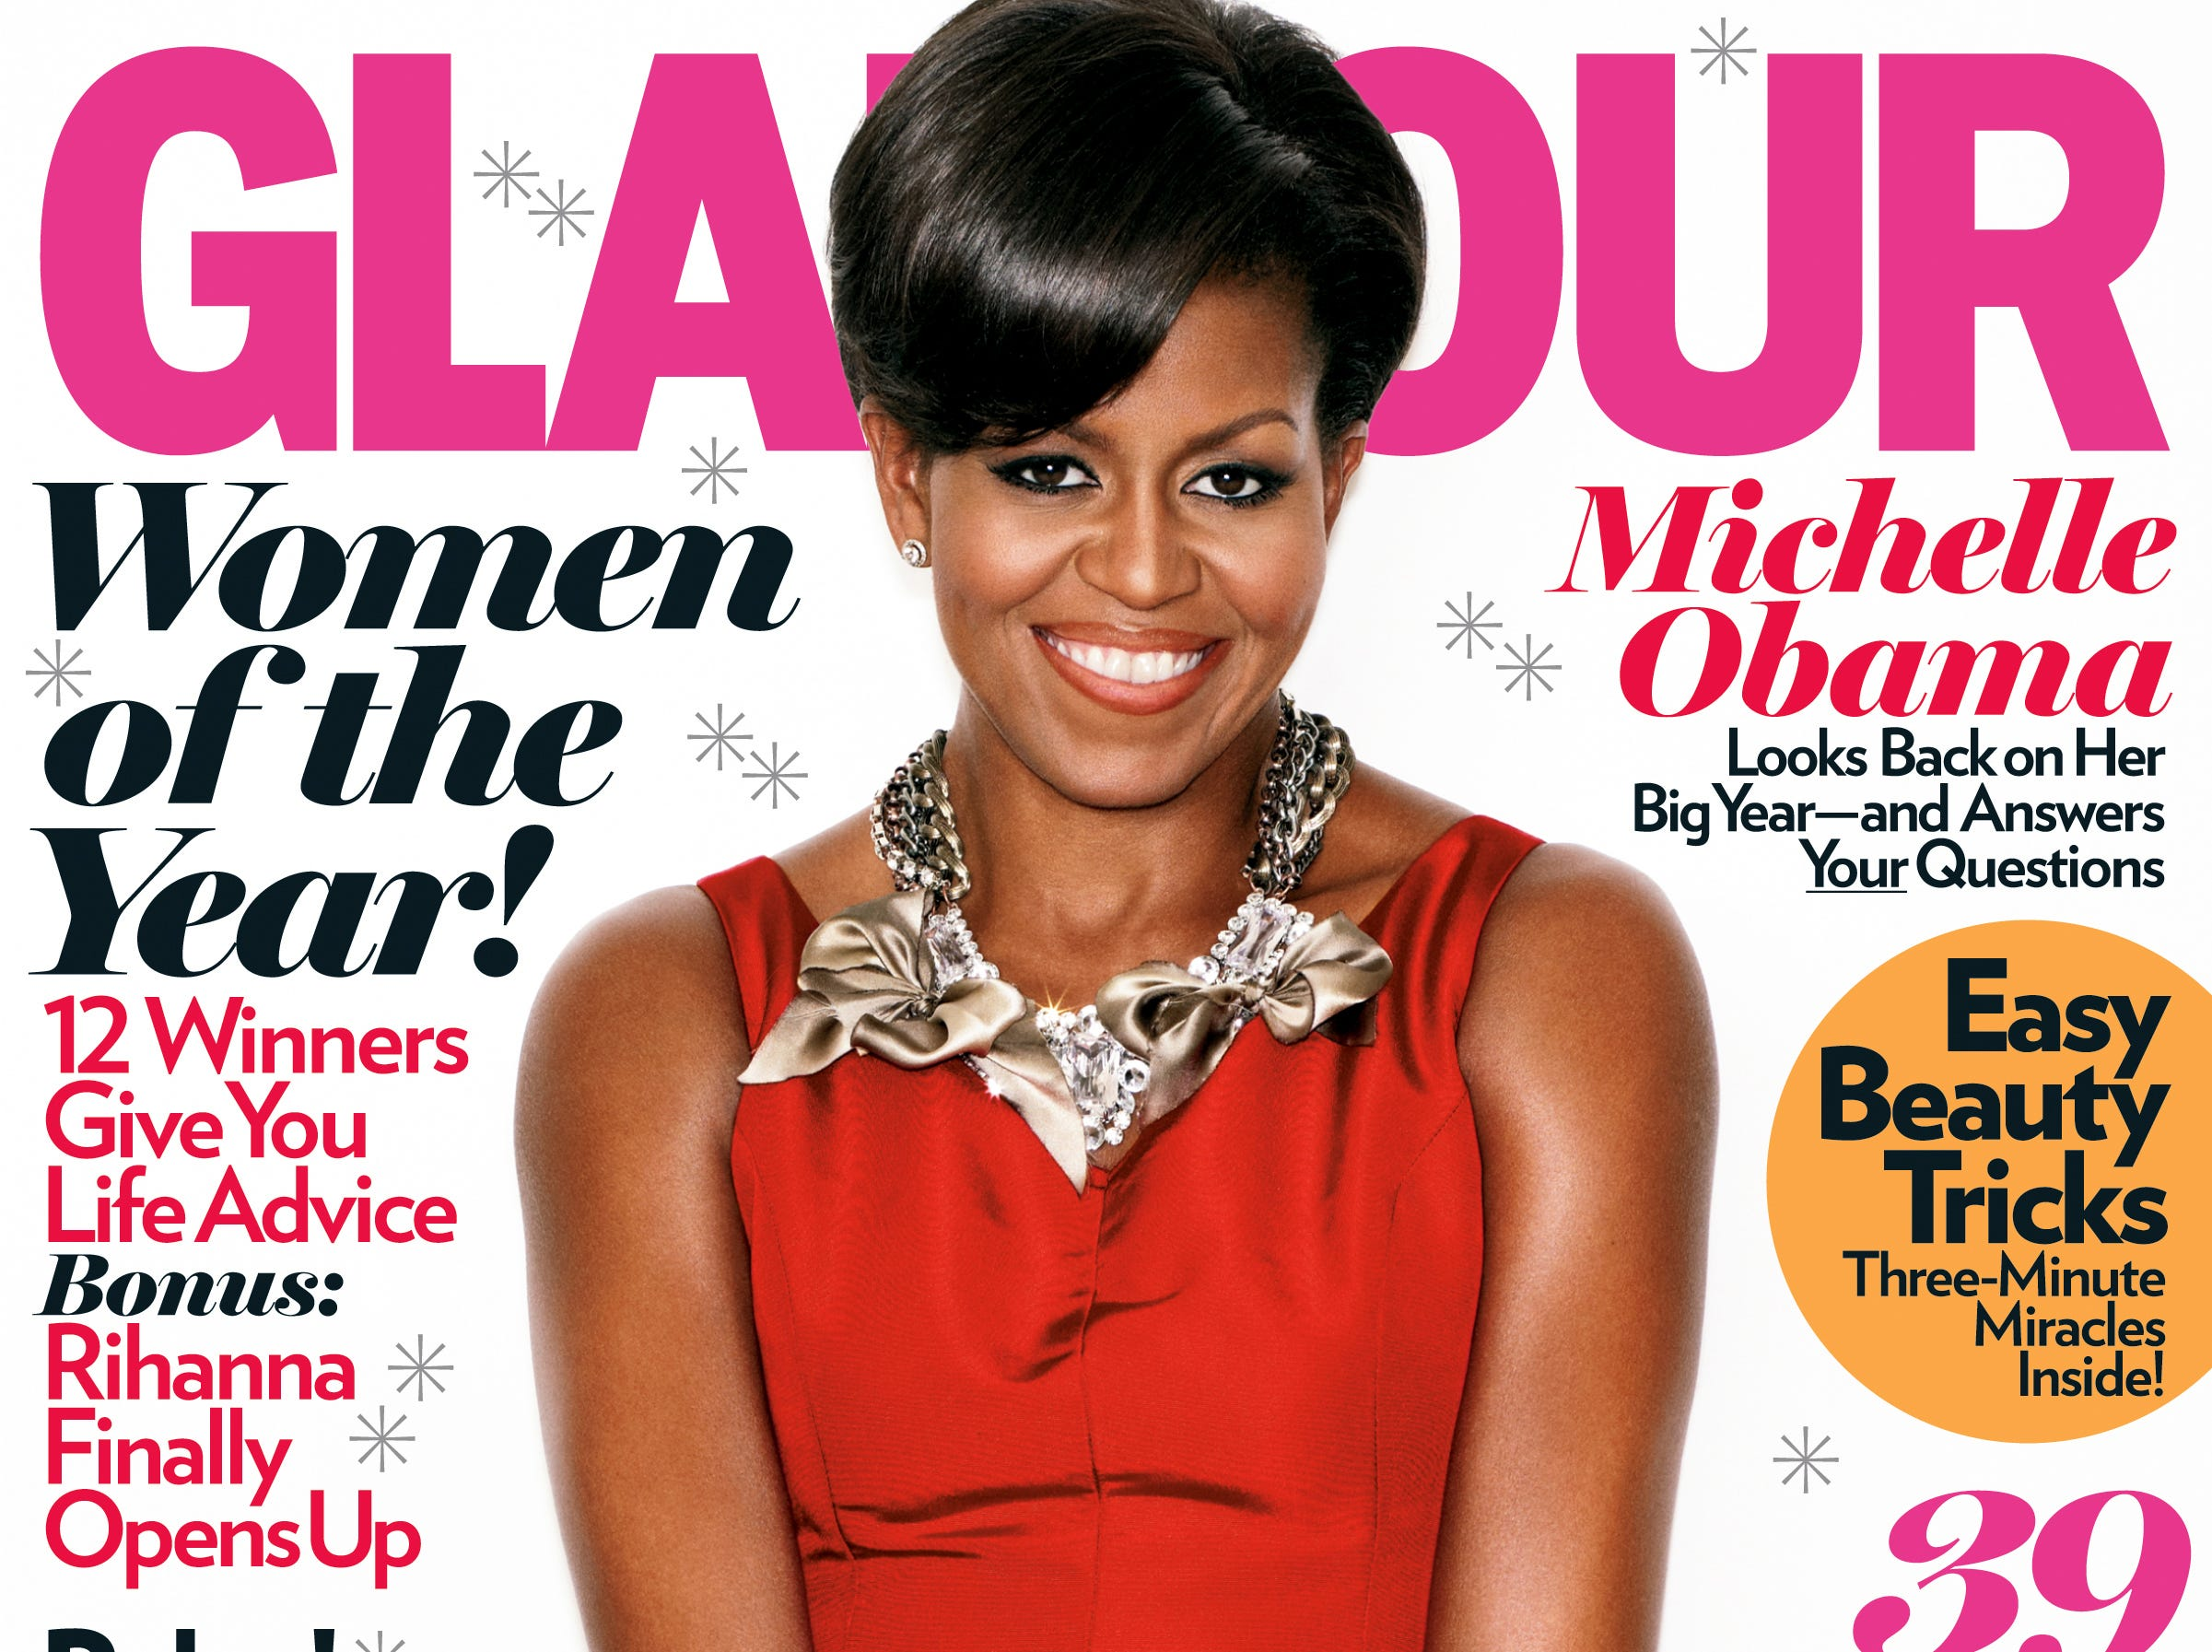 Michelle Obama was photographed by Matthias Vriens-McGrath for one of five celebratory Women of the Year covers of Glamour magazine.